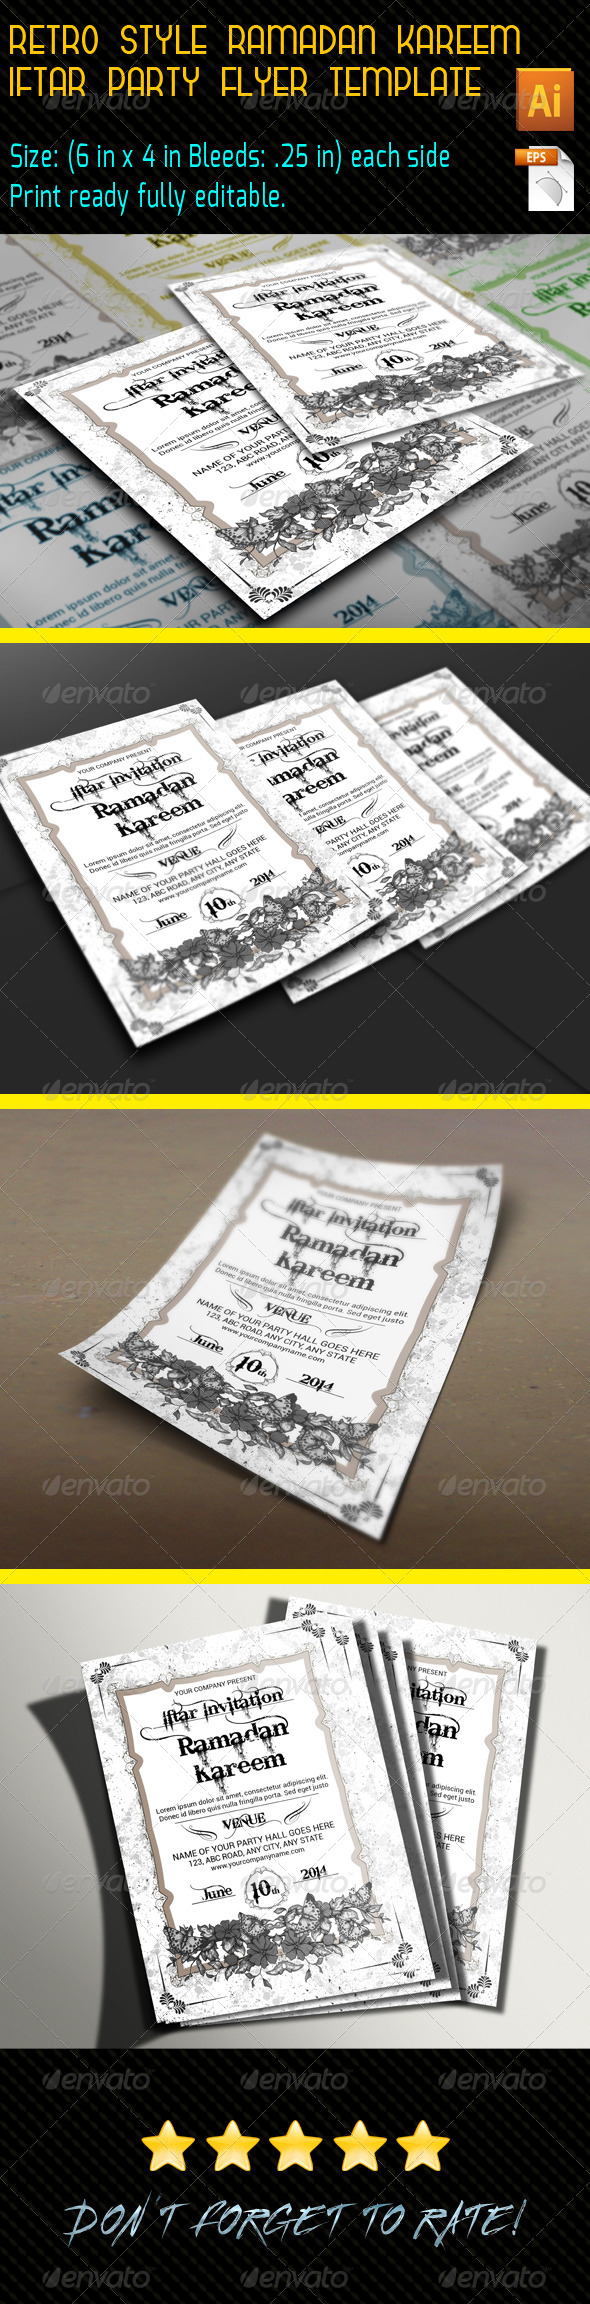 GraphicRiver Retro Style Ramadan Kareem Flyer Template 8157092